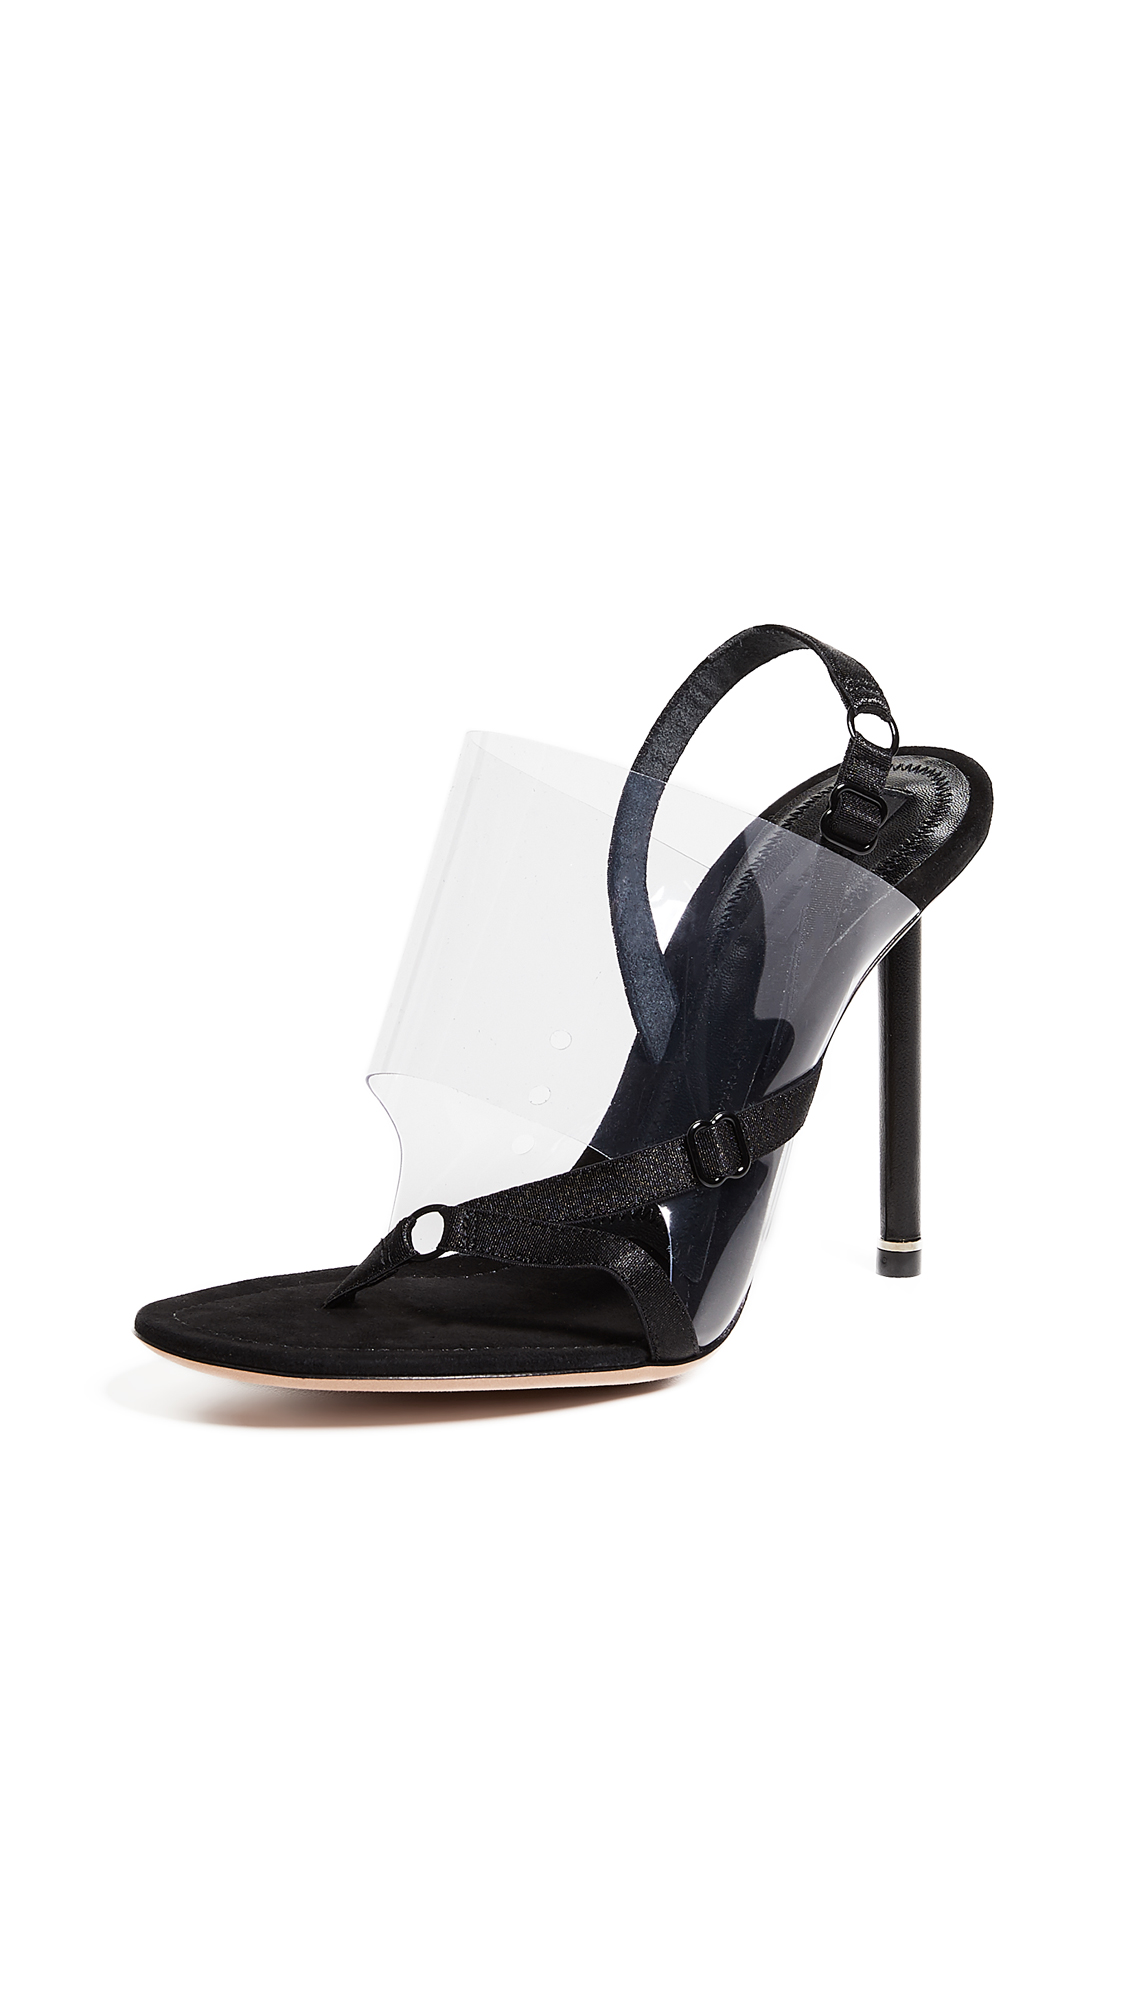 Alexander Wang Kaia High Heel Sandals - Black